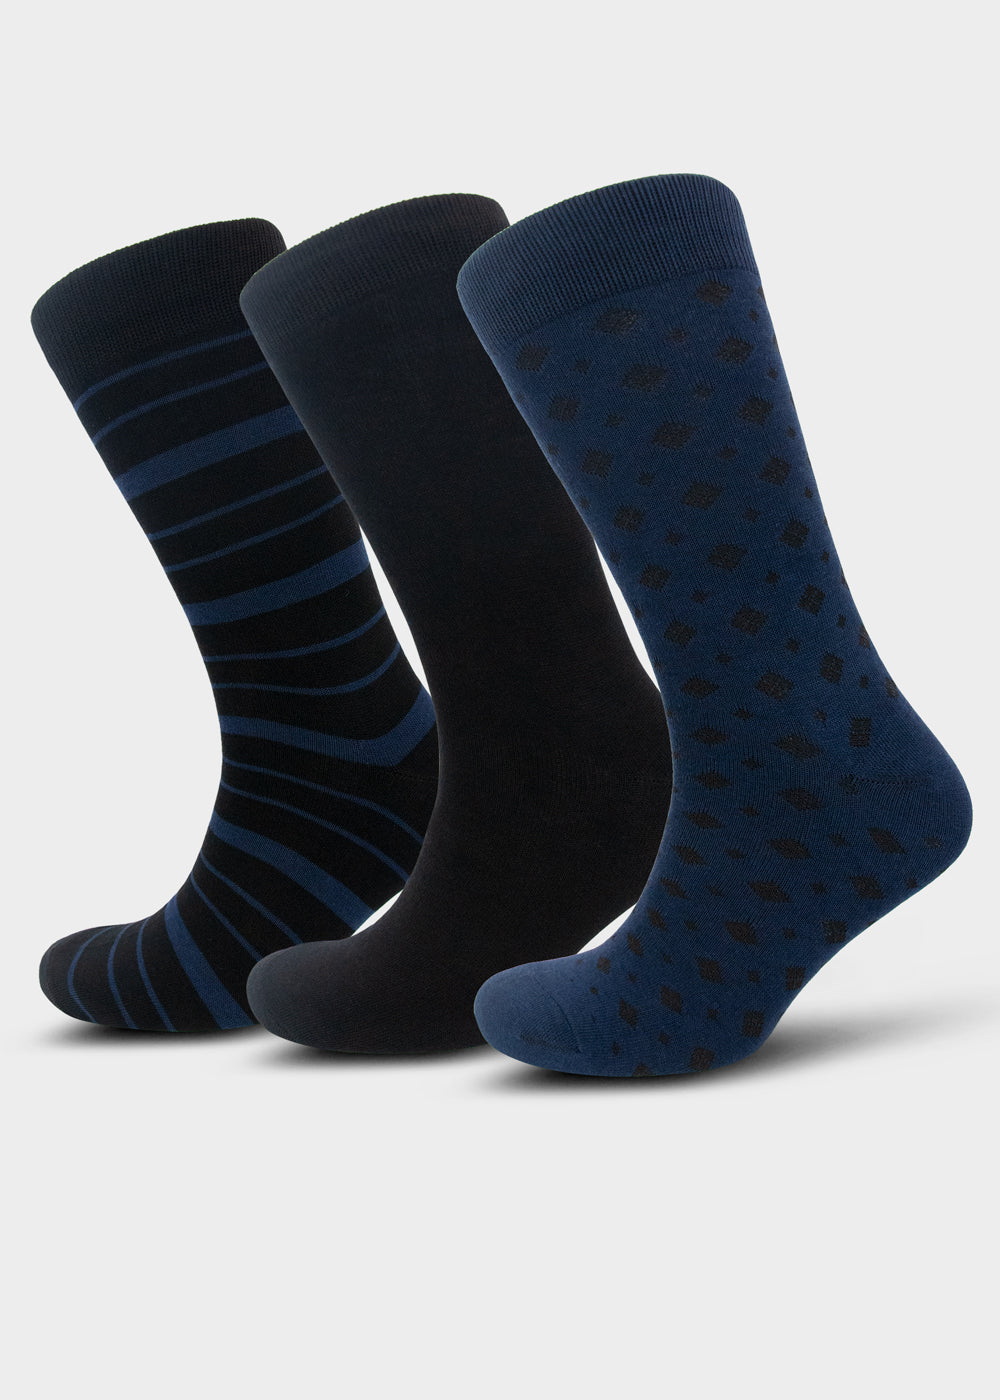 William Hunt Savile Row Men's Blue & Black Socks